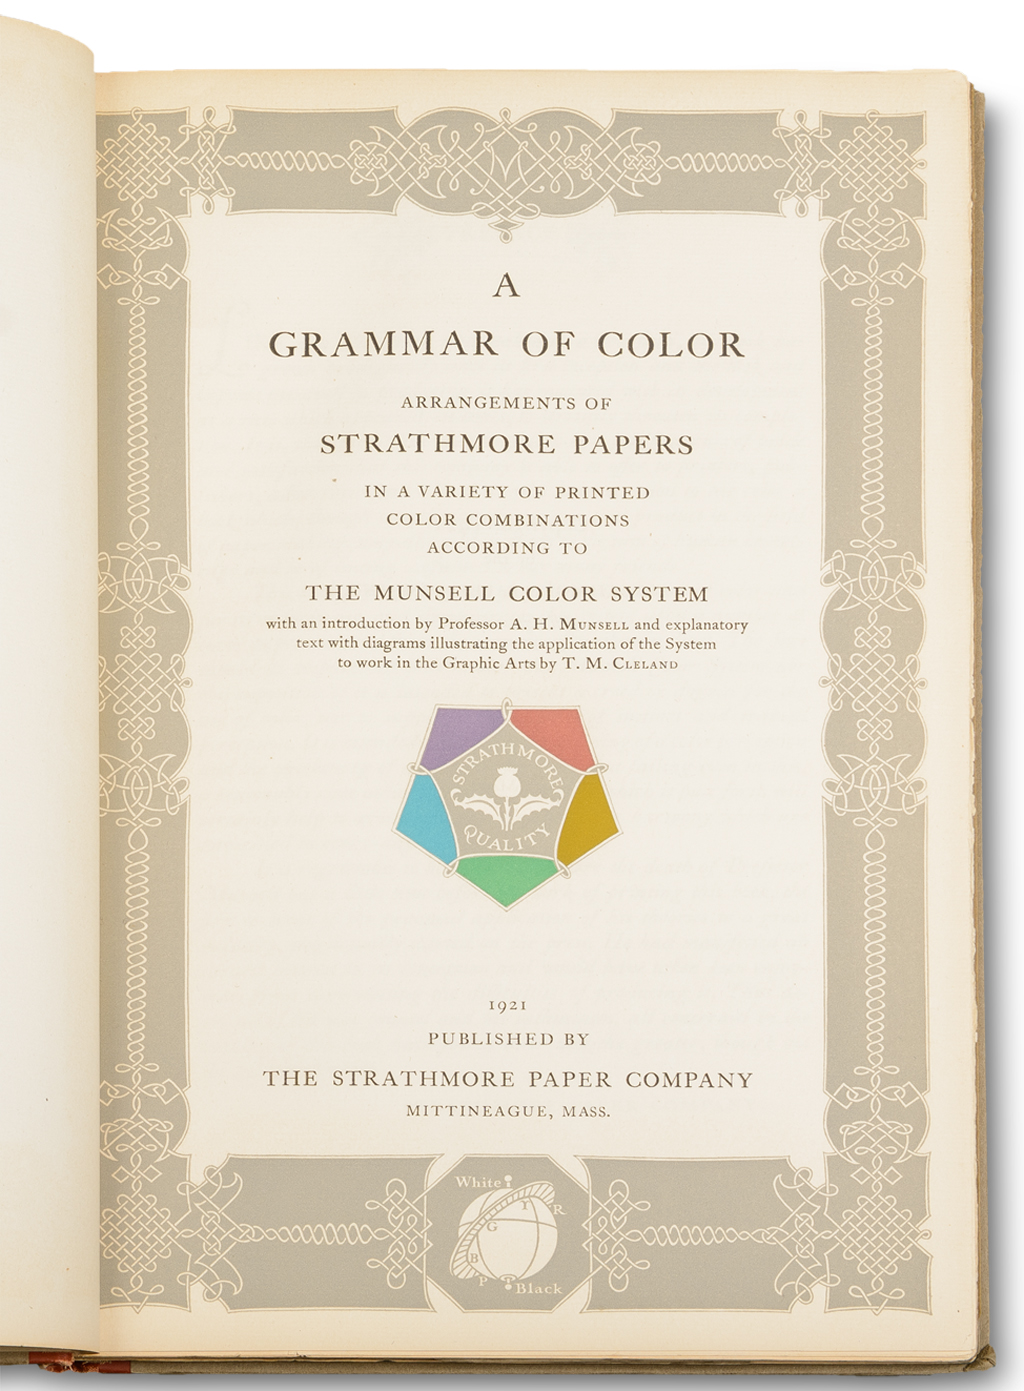 Title page of A Grammar of Color by A.H. Munsell (Mittineague: The Strathmore Paper Company, 1921). Design by T.M. Cleland.